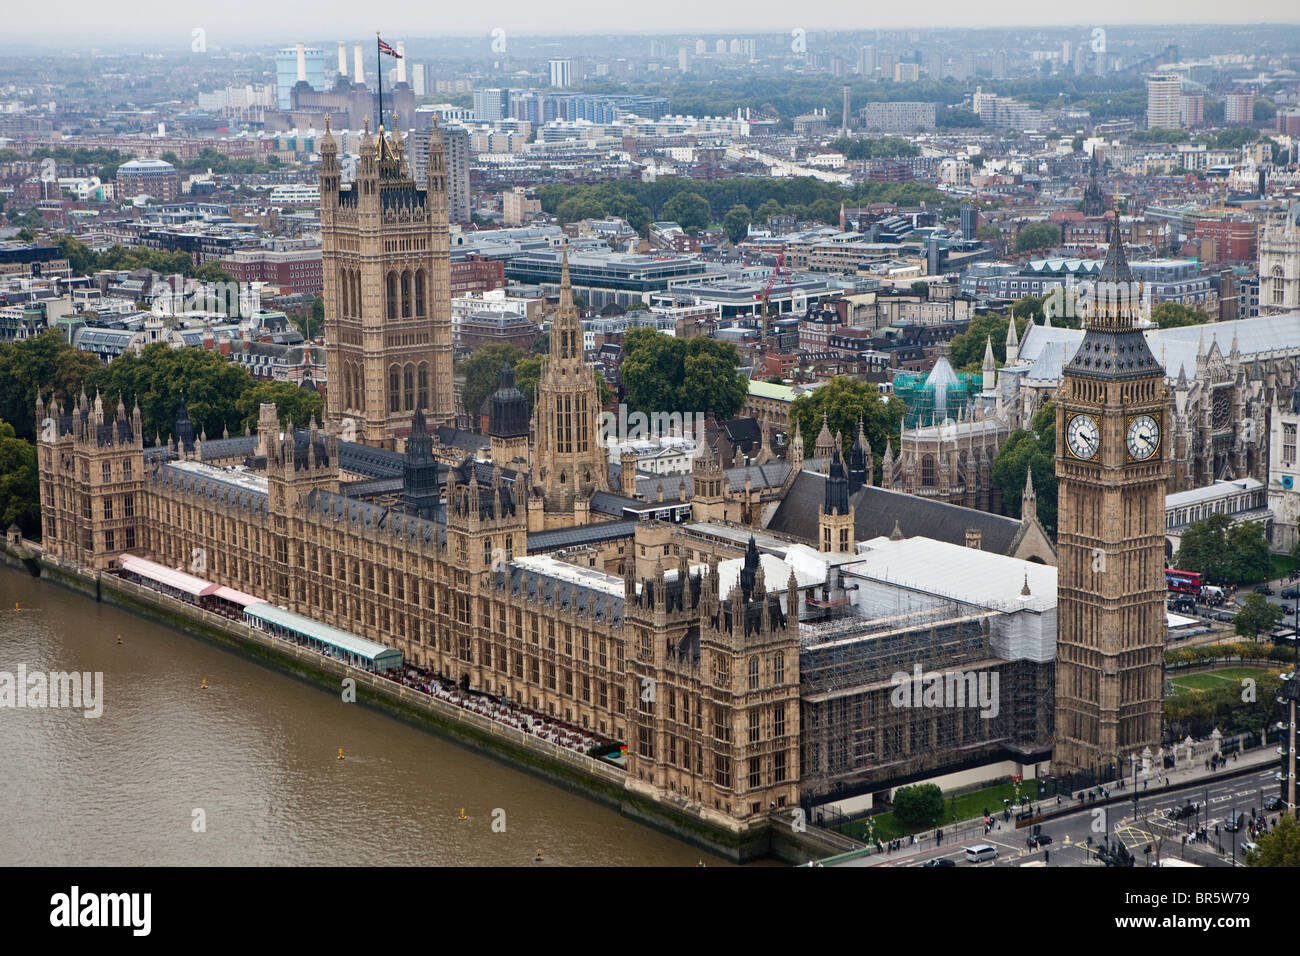 An aerial view of the The Palace of Westminster, also known as the Houses of Parliament. London. - Stock Image